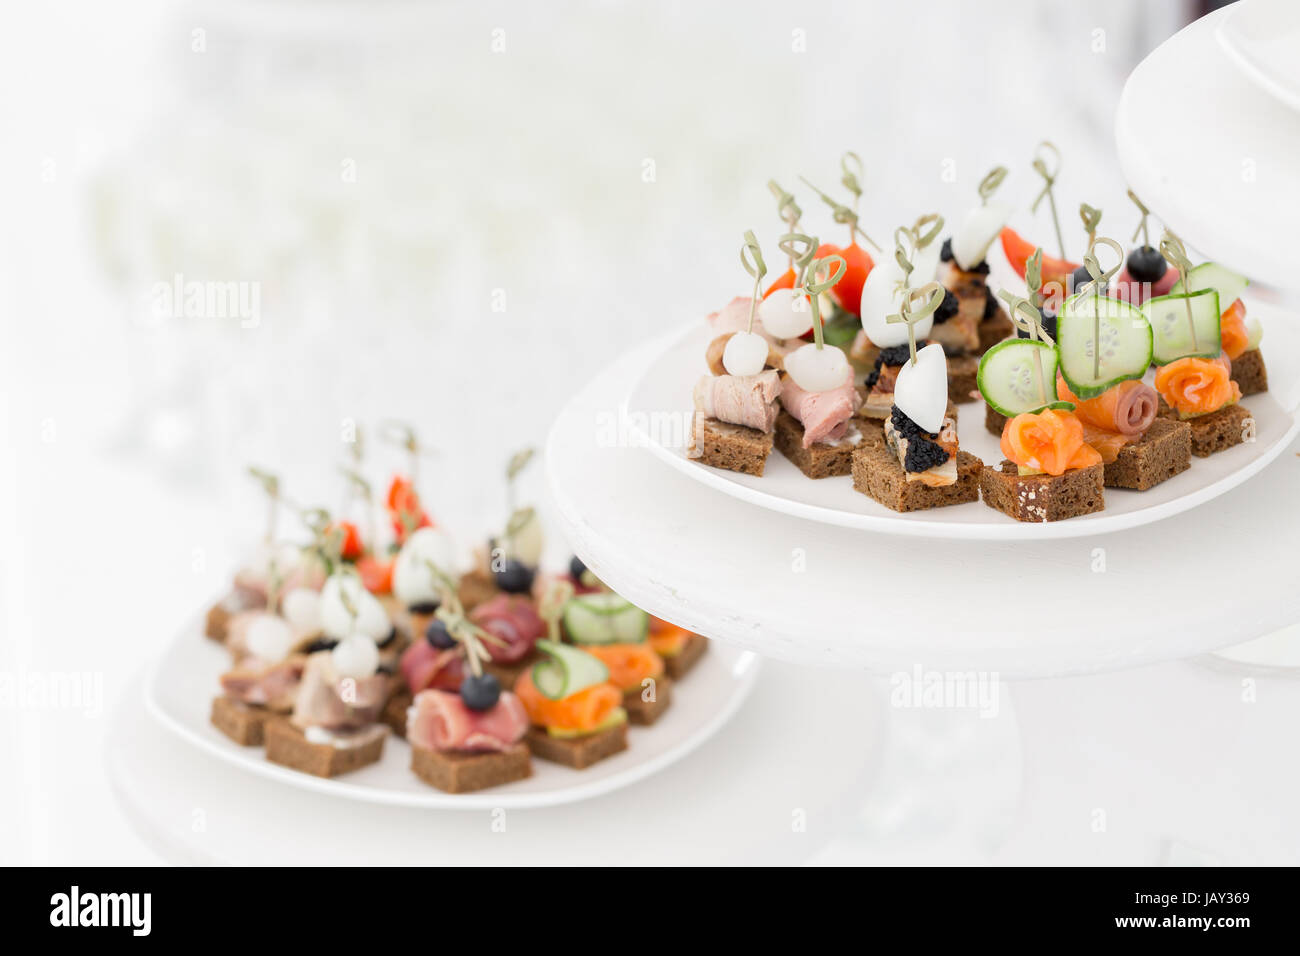 the buffet at the reception. Assortment of canapes. Banquet service. catering food - Stock Image